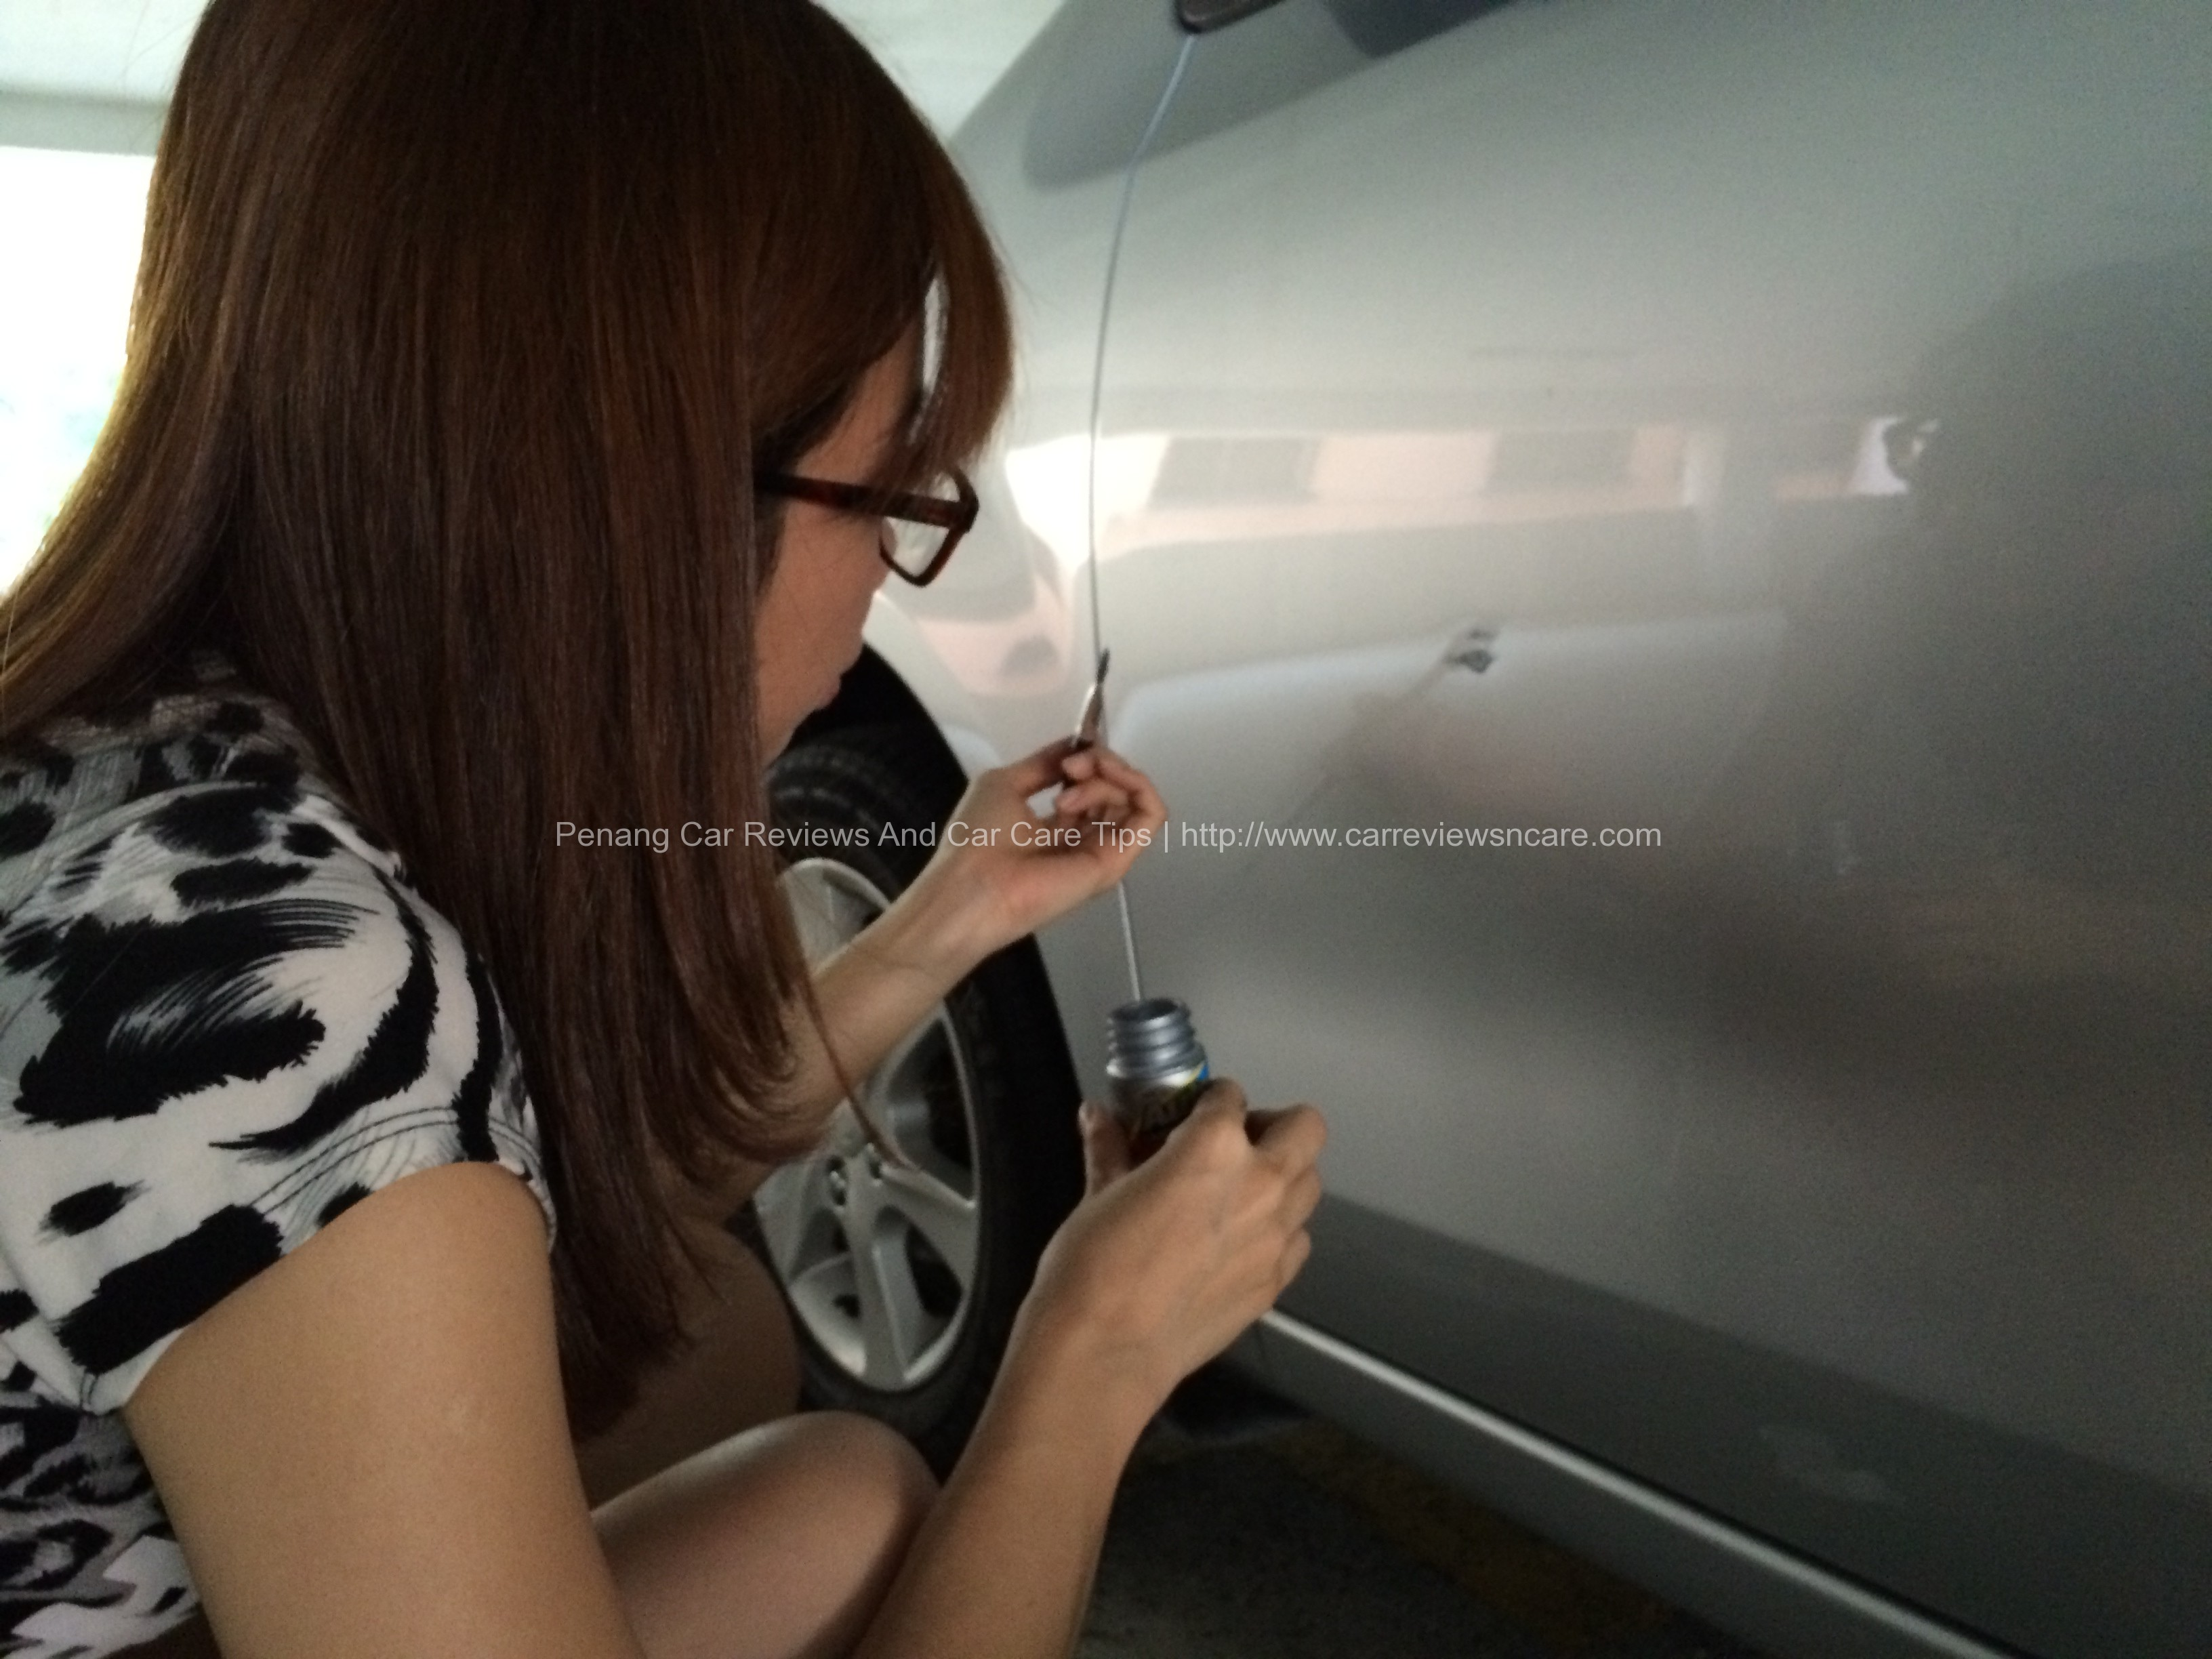 Best diy car touch up paint diy unixcode do it yourself paint scratch repair on car carreviewsncare com solutioingenieria Images